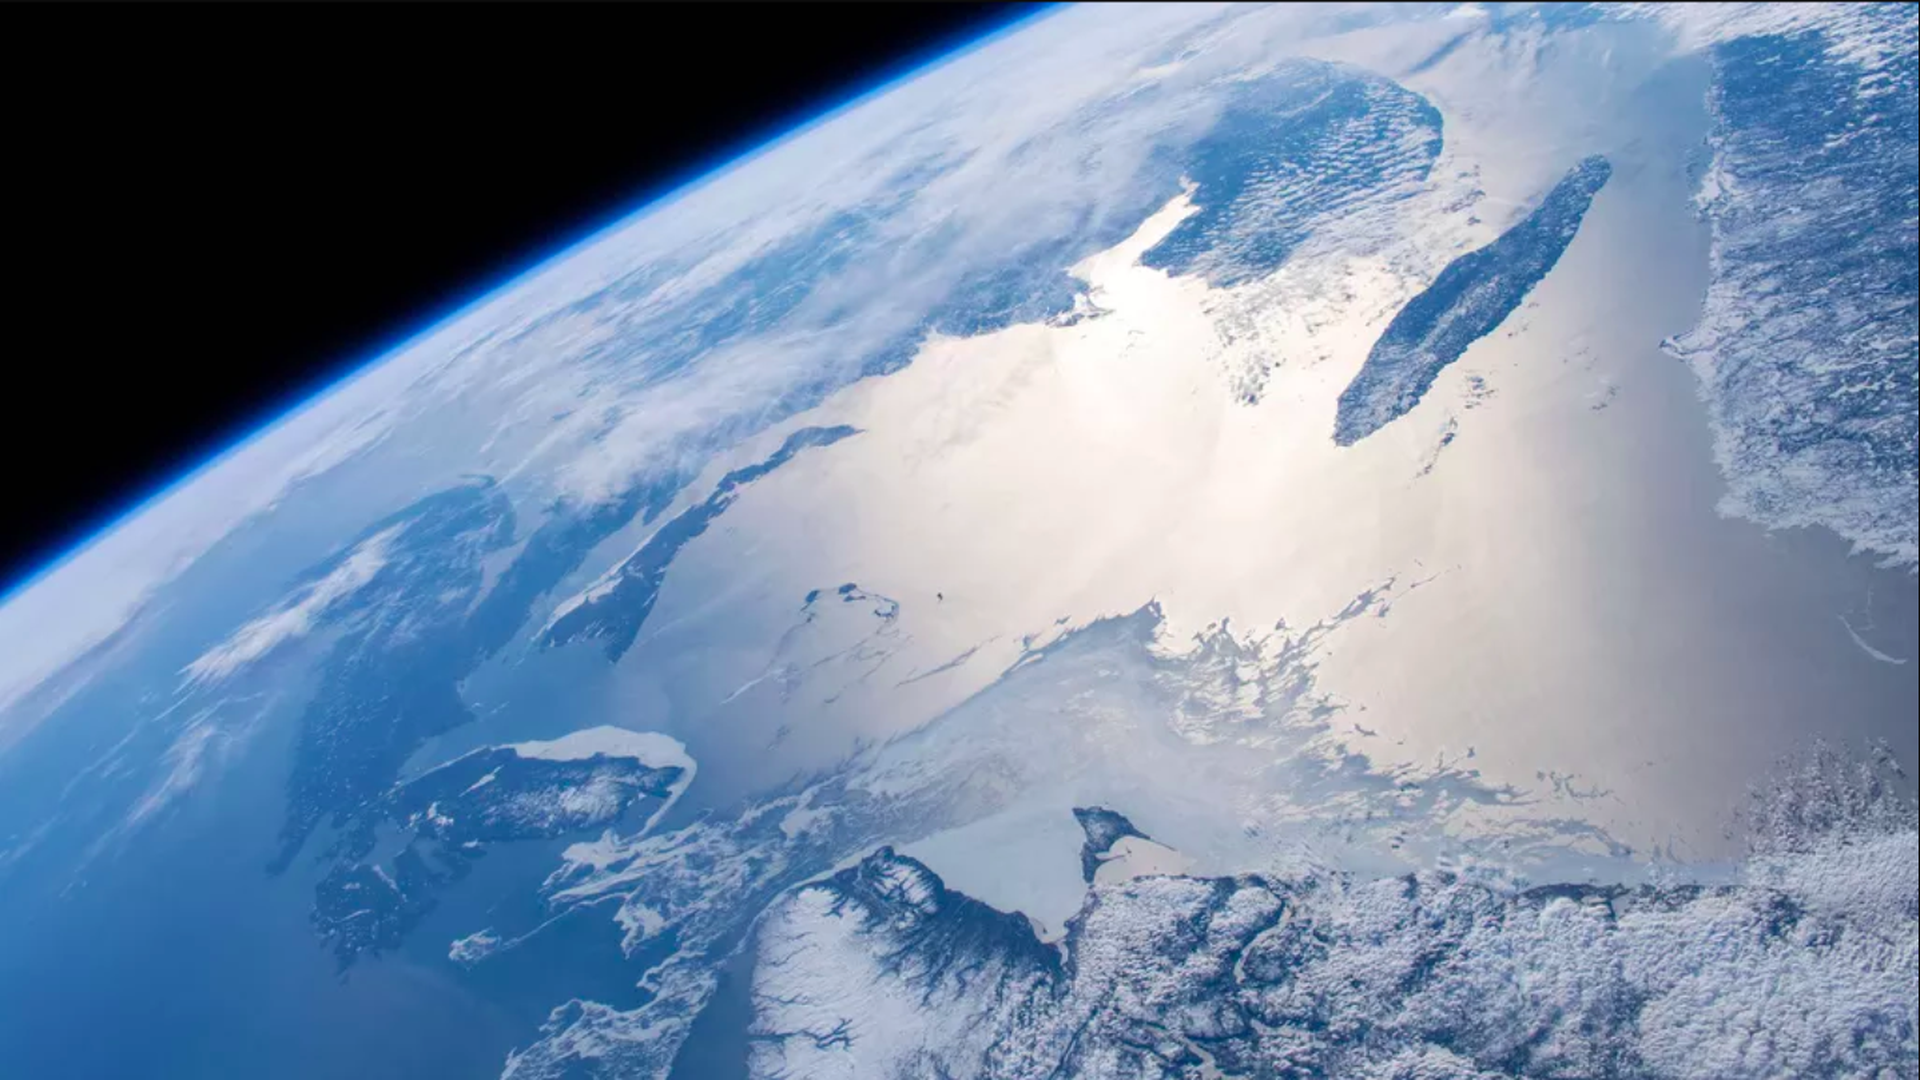 This image is a view of a quarter of the earth from space. It's mostly blue, with some glaciers.